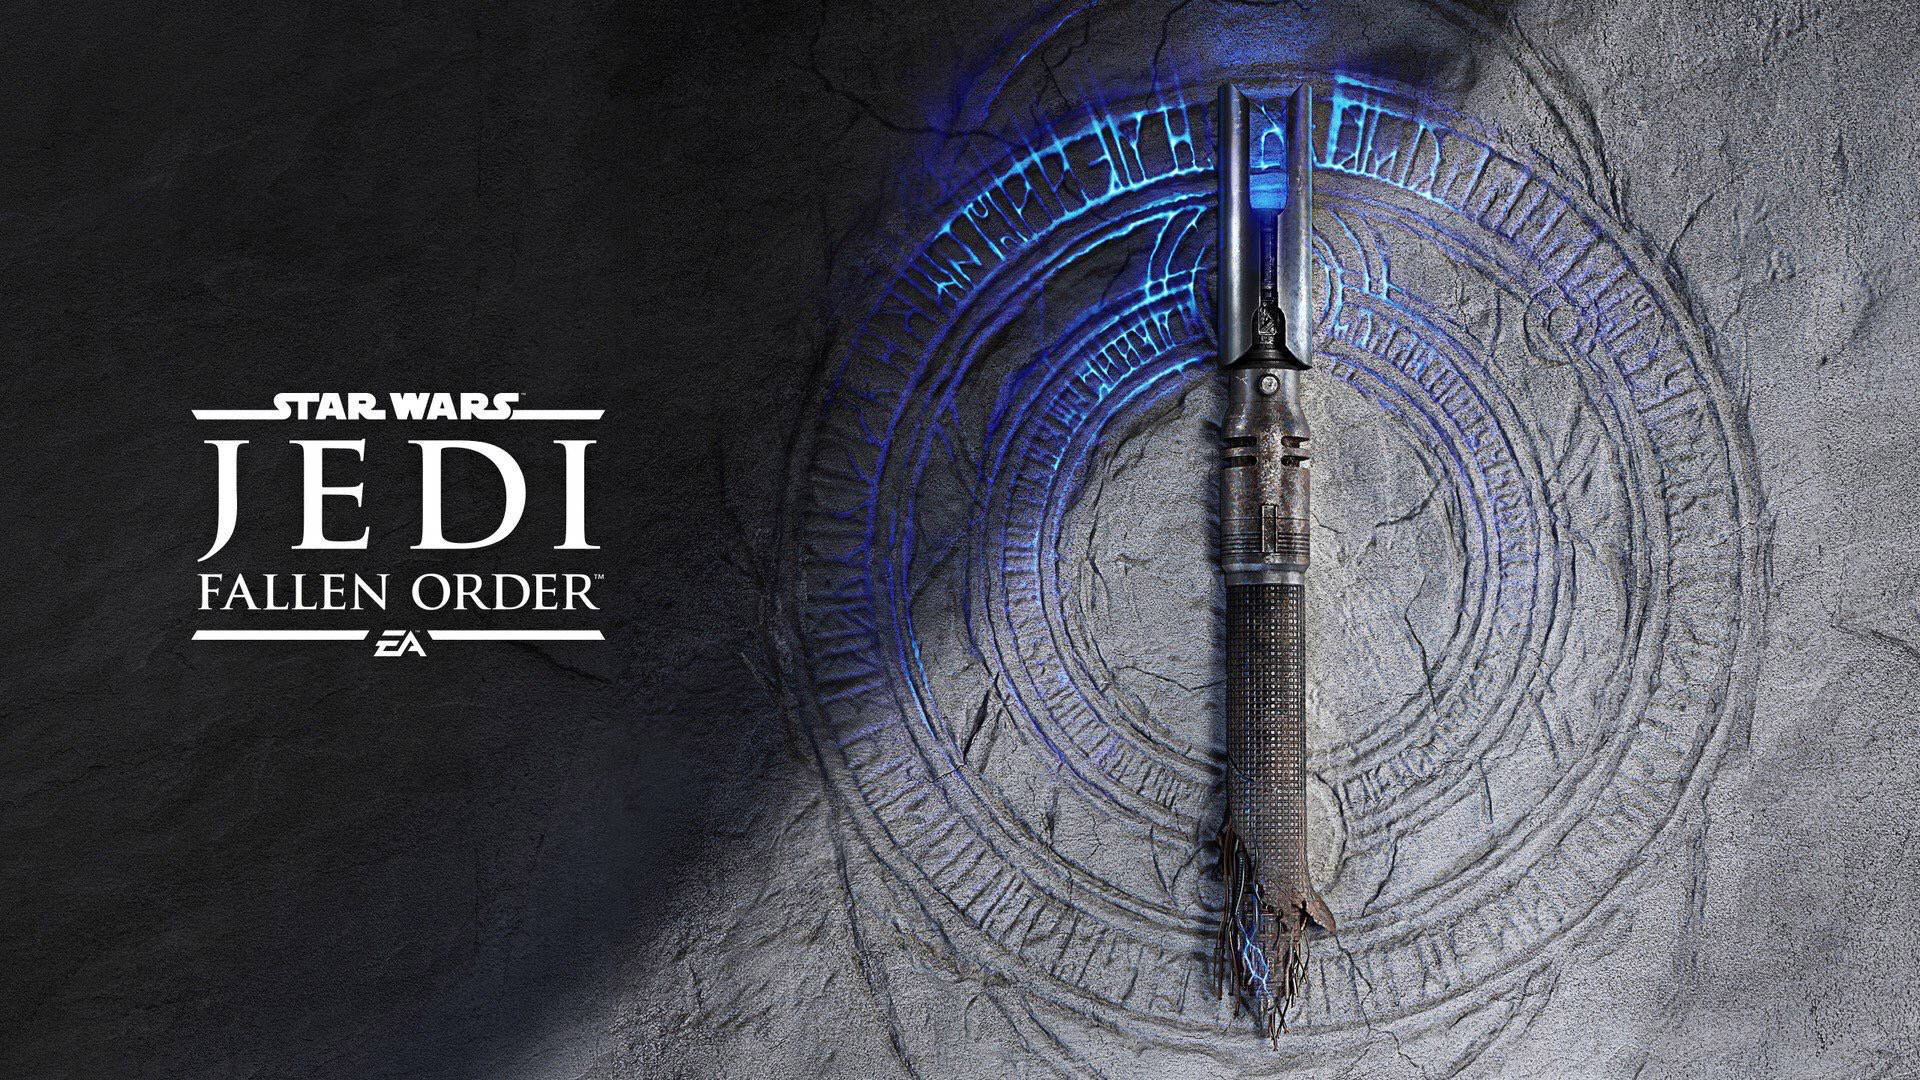 Free Star Wars Jedi: Fallen Order Wallpaper in 1920x1080